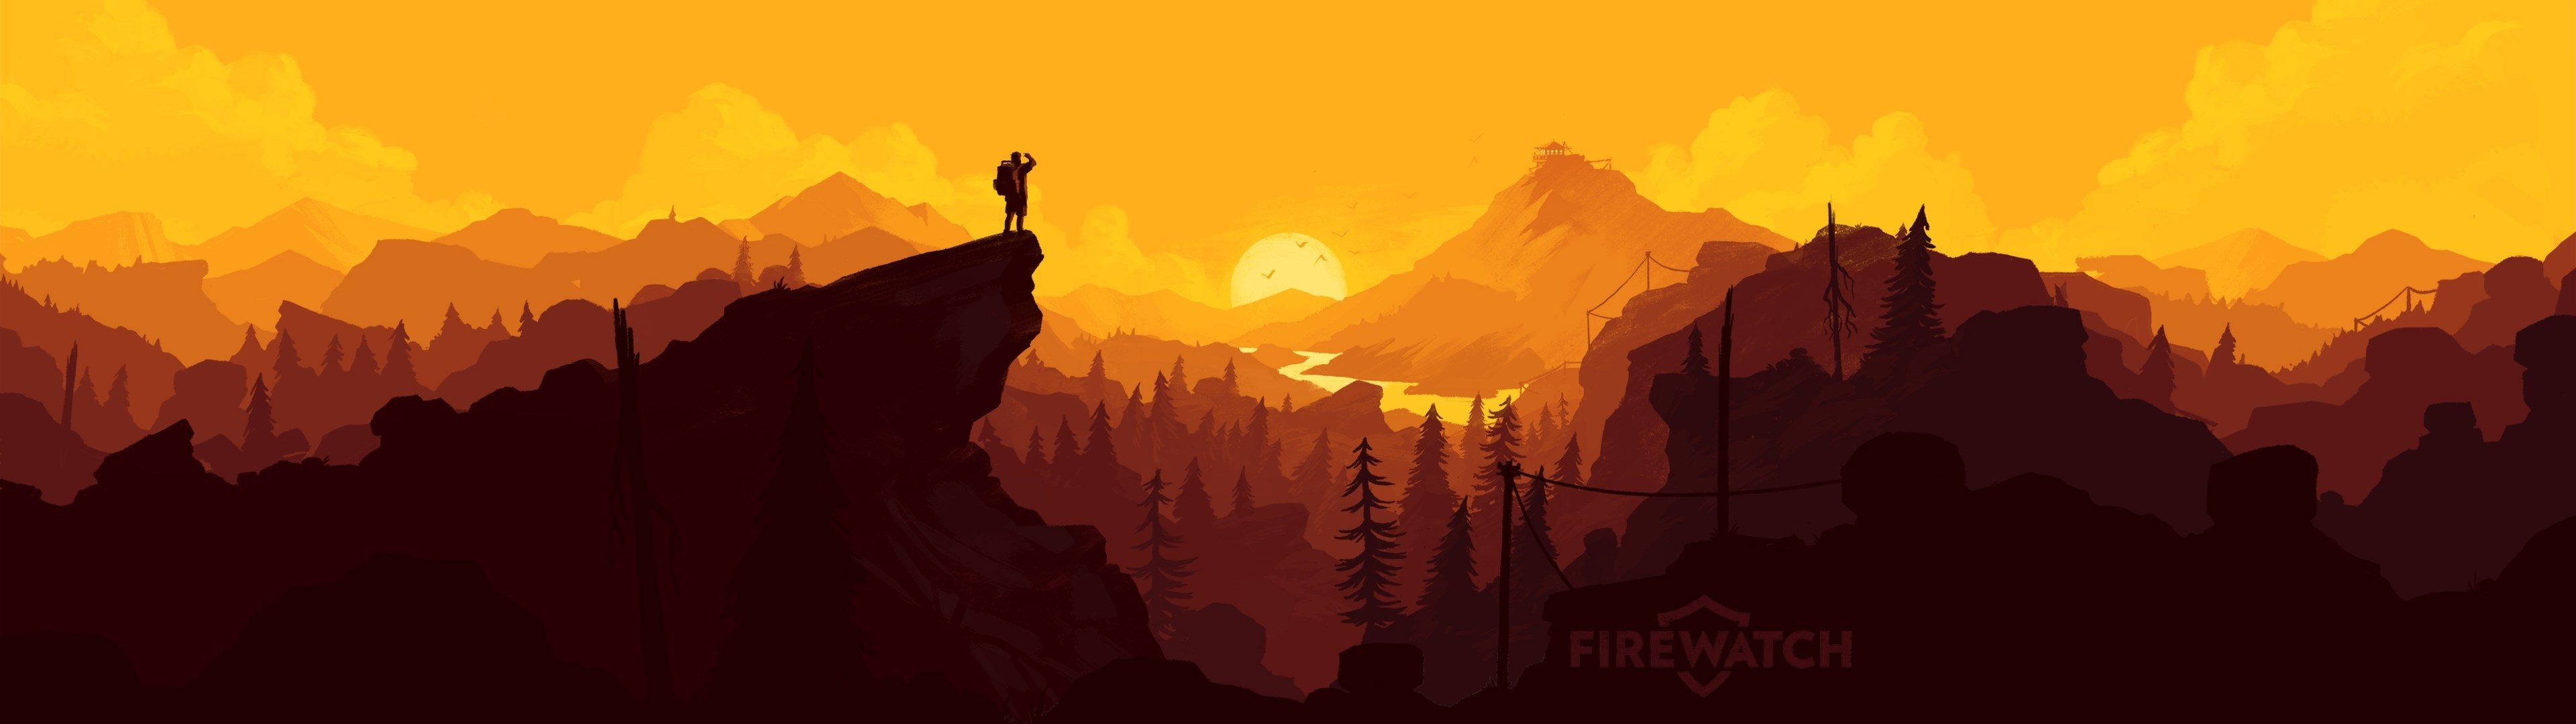 3840x1080 firewatch 4k hd wallpaper Firewatch, Android